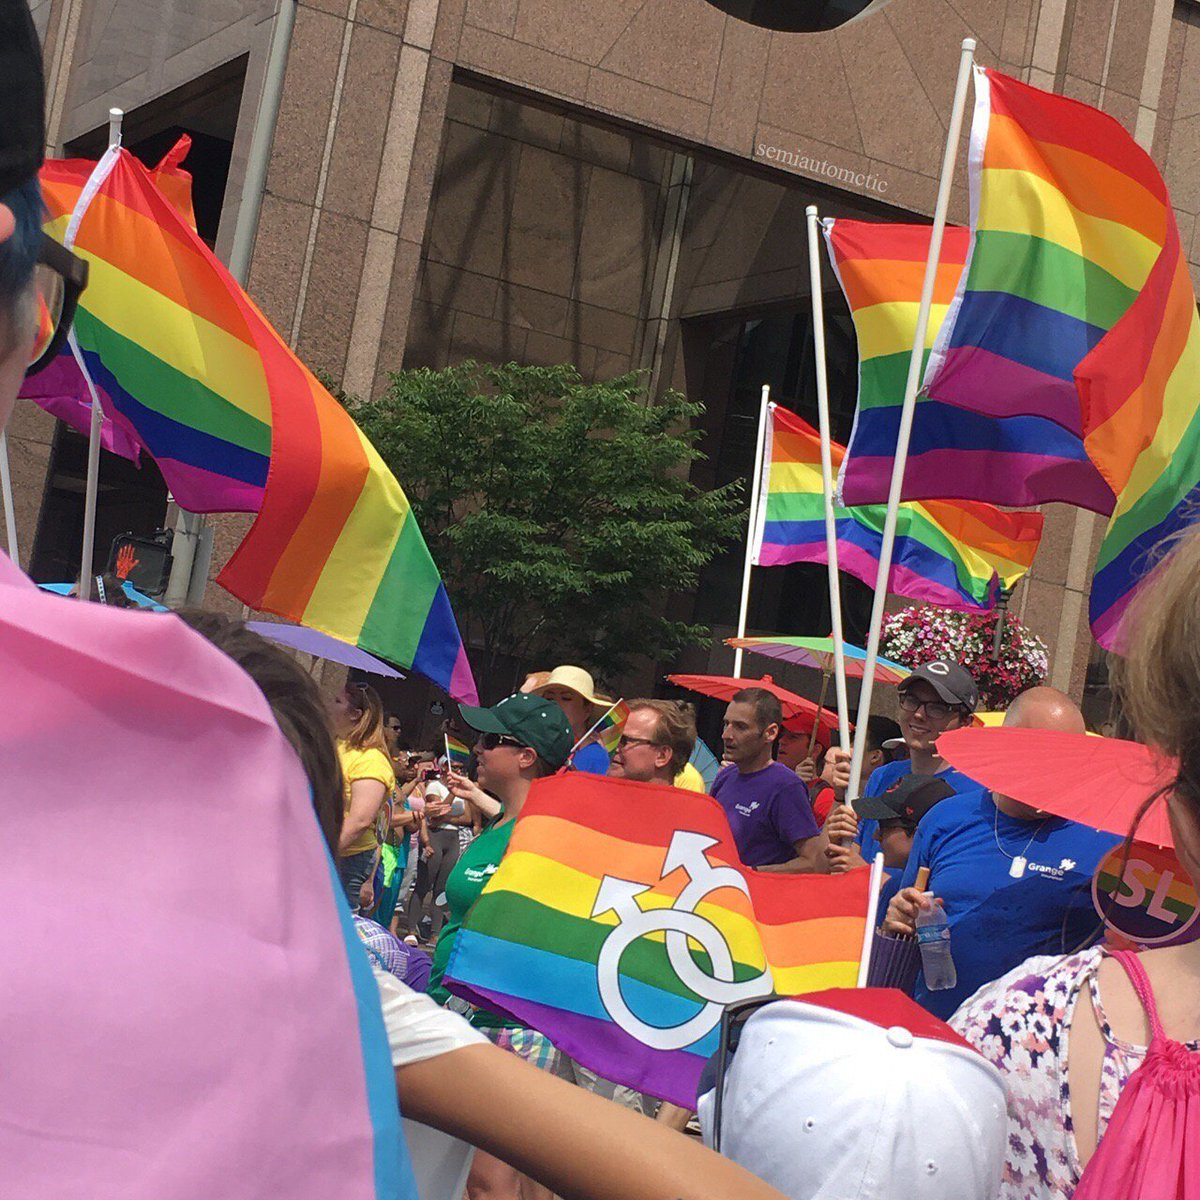 Rocket City Pride Generating Discussion Buzz About Annual Lesbian, Gay, Bi